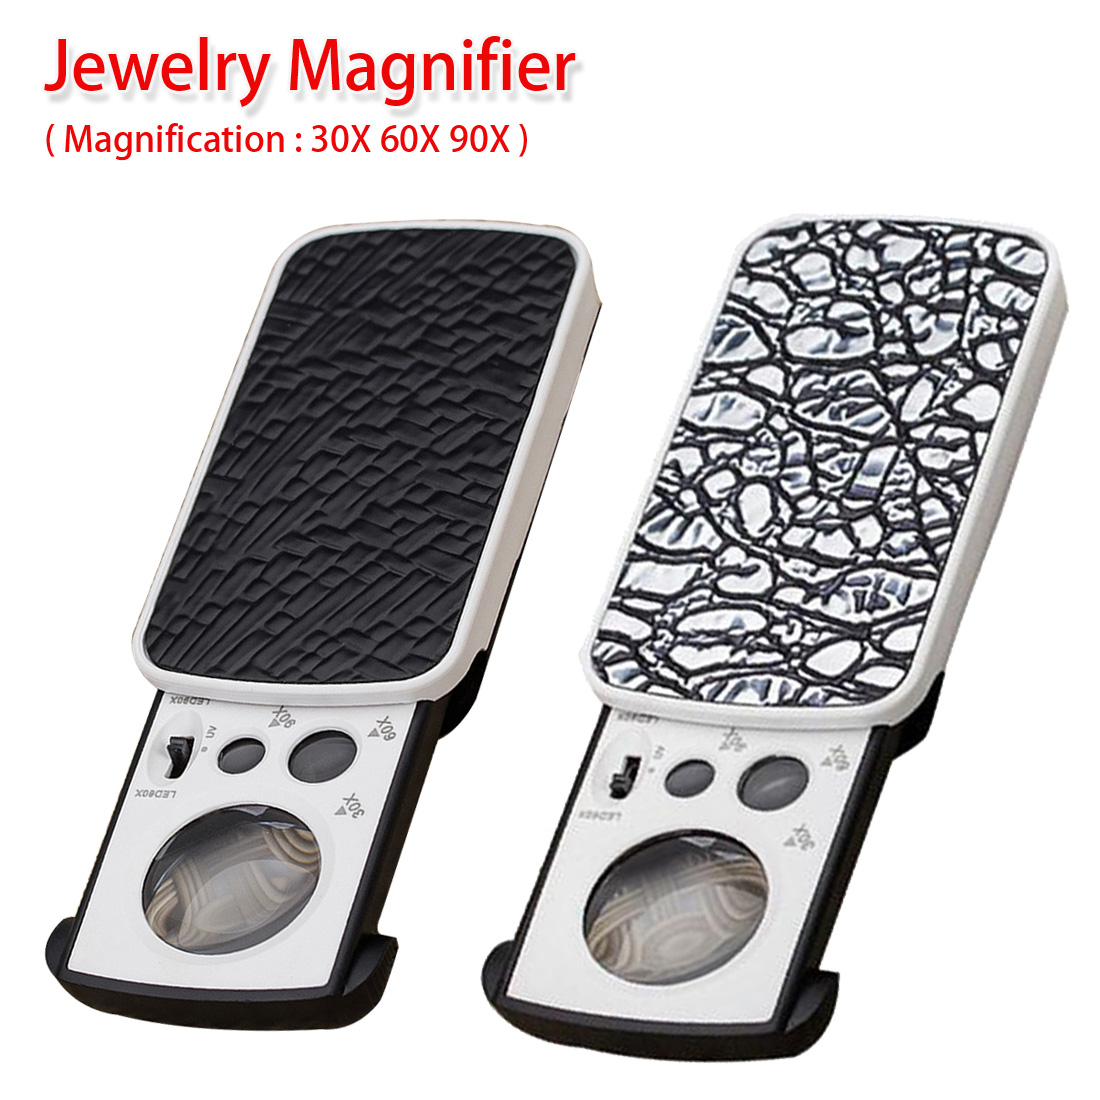 Magnifier 30X 60X 90X Jewelry Appraisal Reading Magnifying Glass High Magnification Acrylic Optical Lens Loupe With LED UV